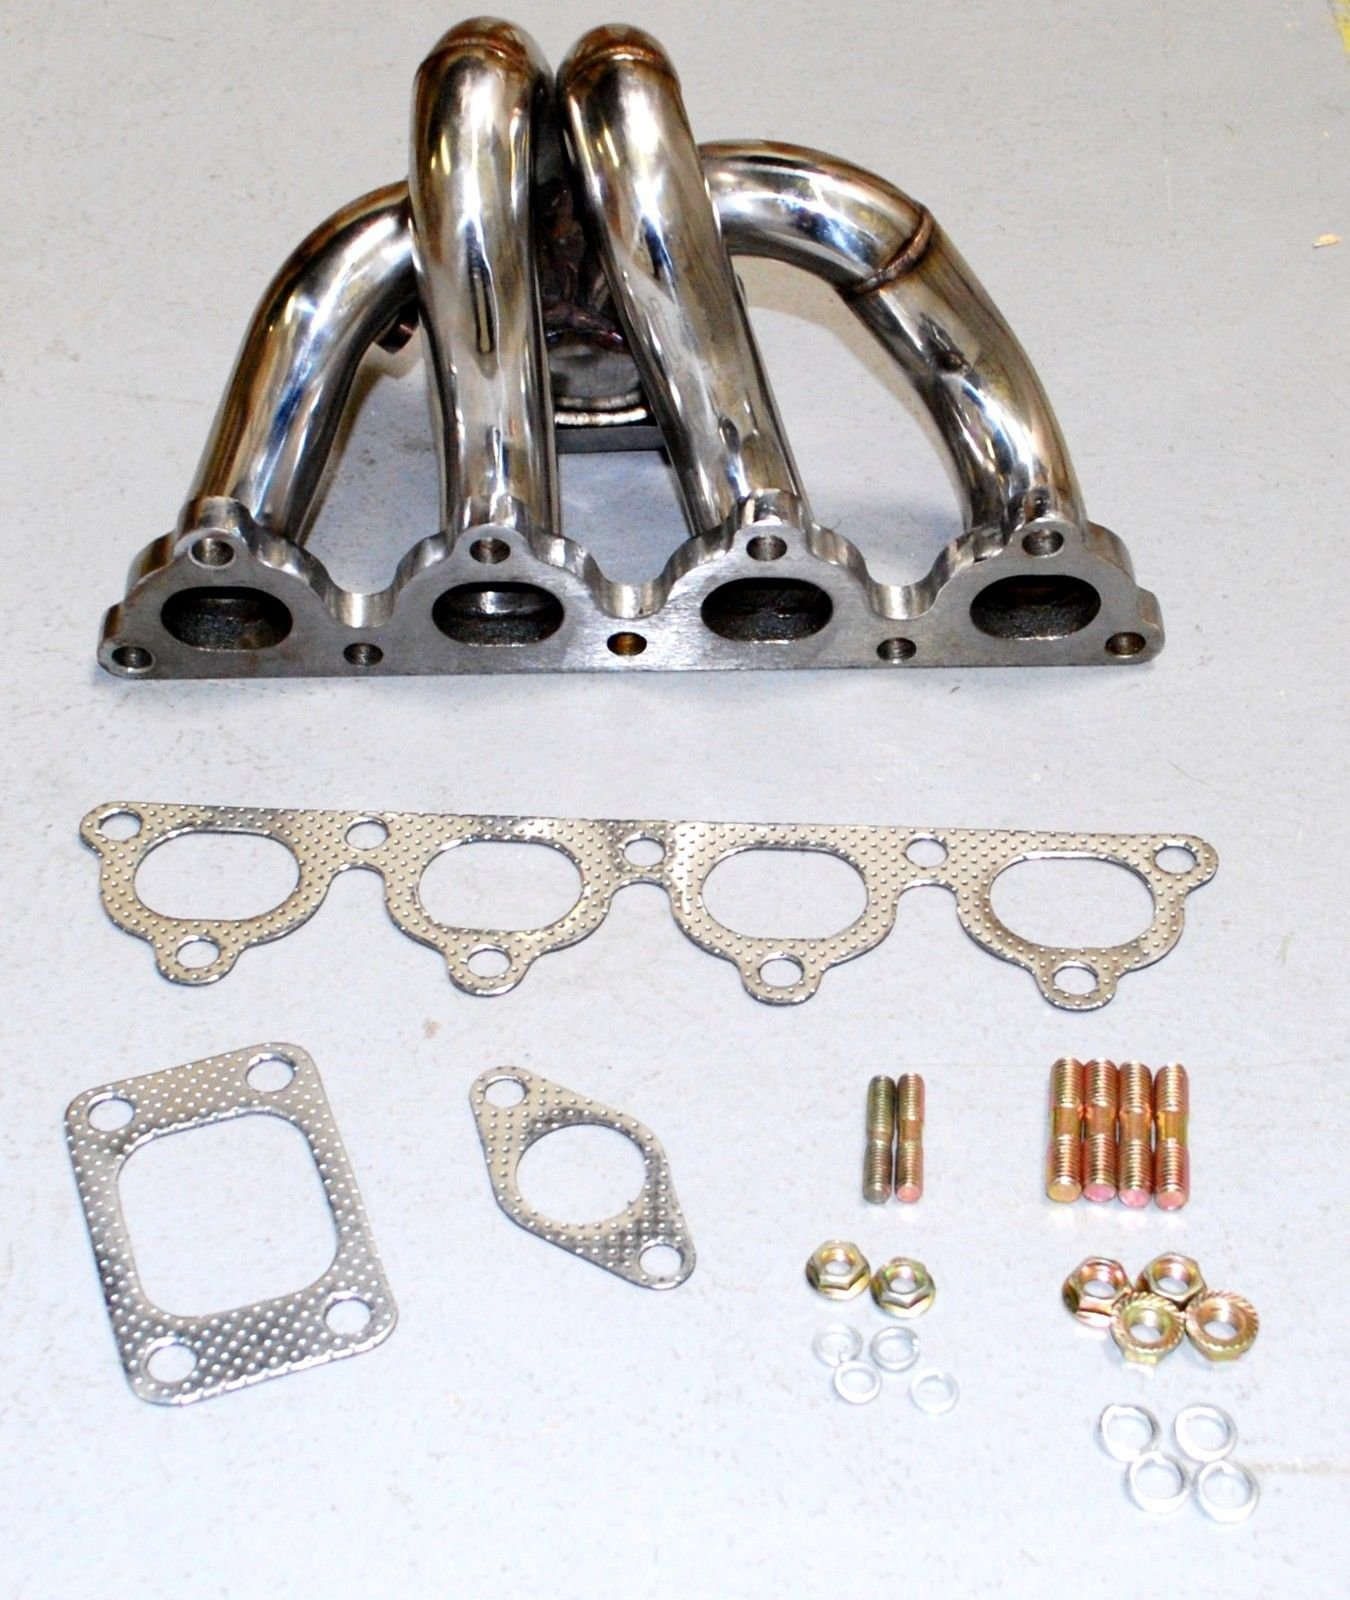 Tubular Turbo Manifold Stainless Steel fits88-91 Honda CRX /88-00 Civic D15/D16 by emusa (Image #7)